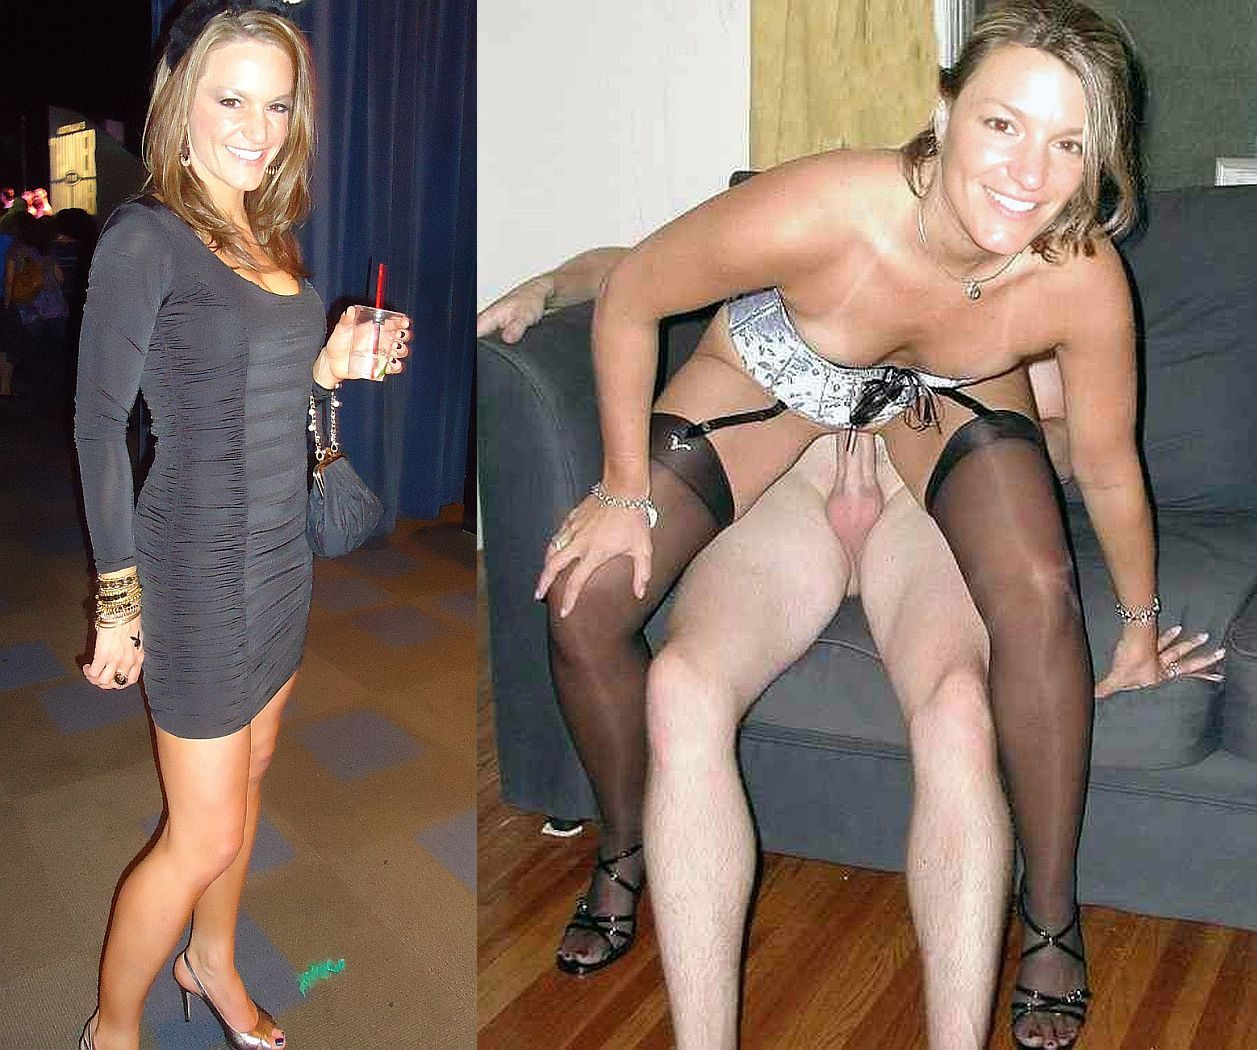 cuckold shared before after